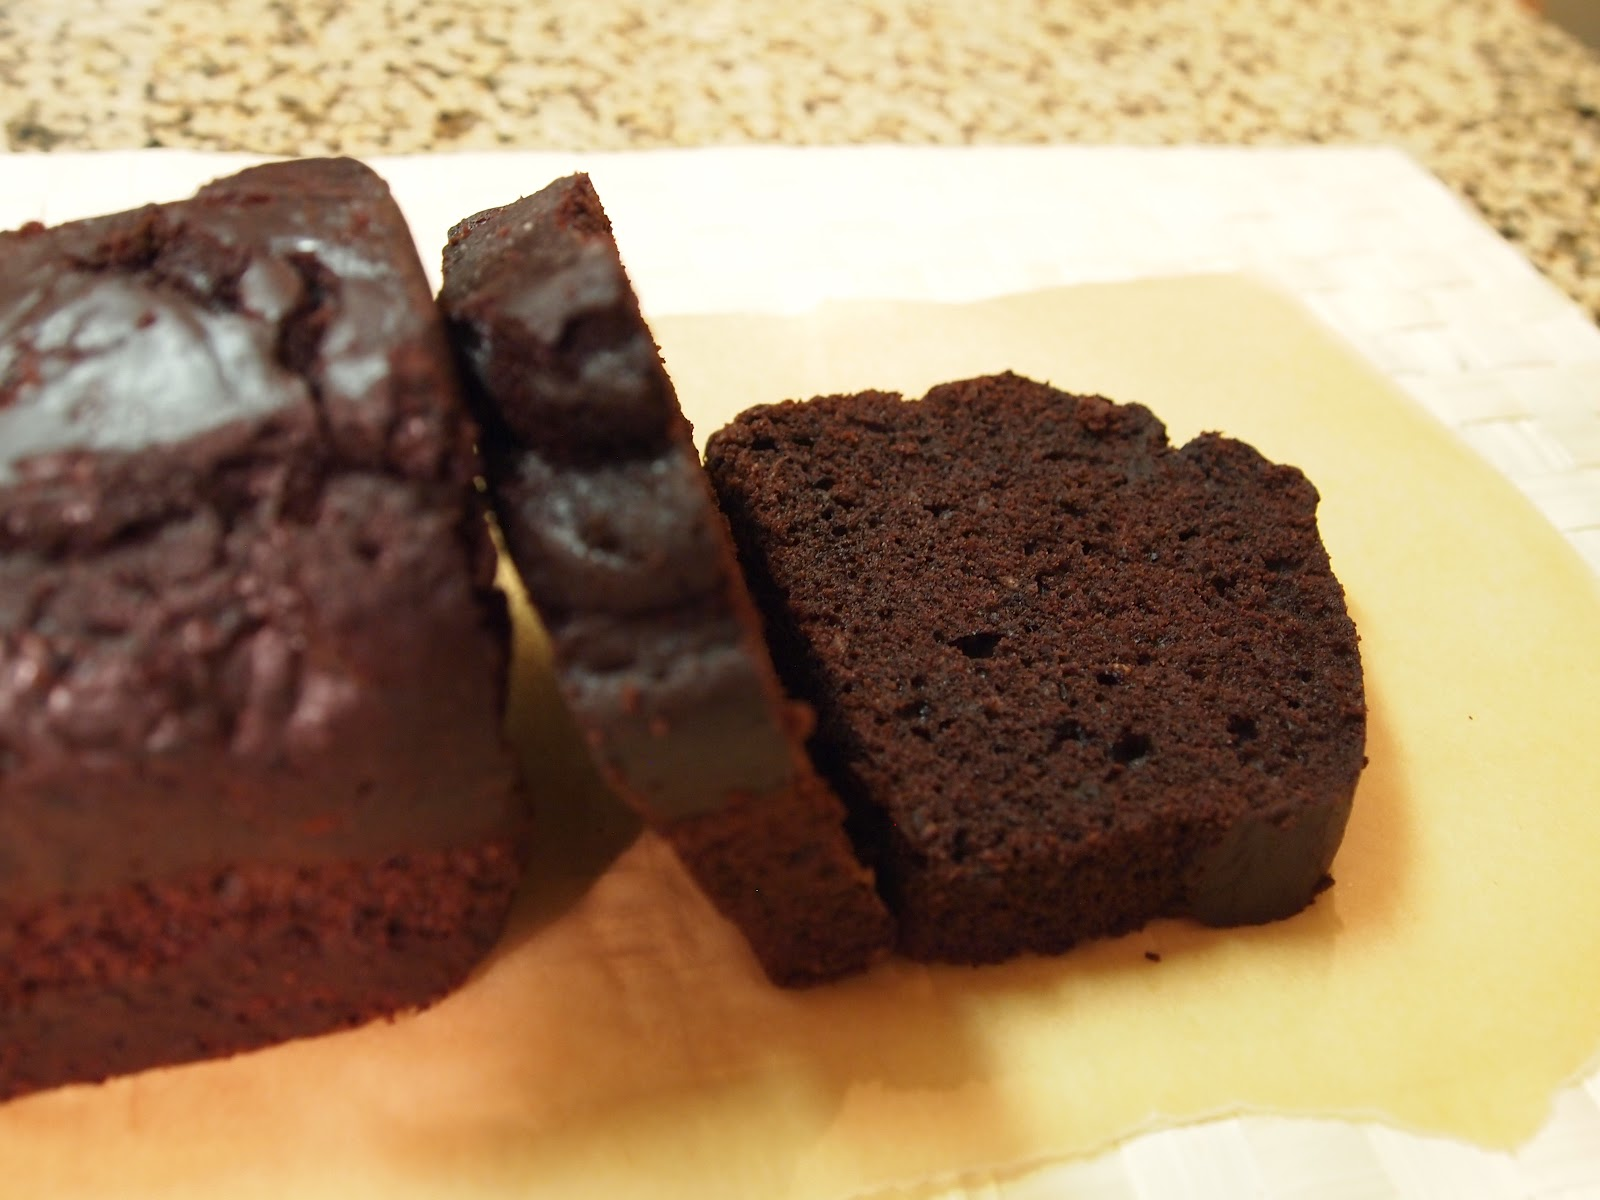 Chez Ma Cuisine: Chocolate Cake Saves the Day